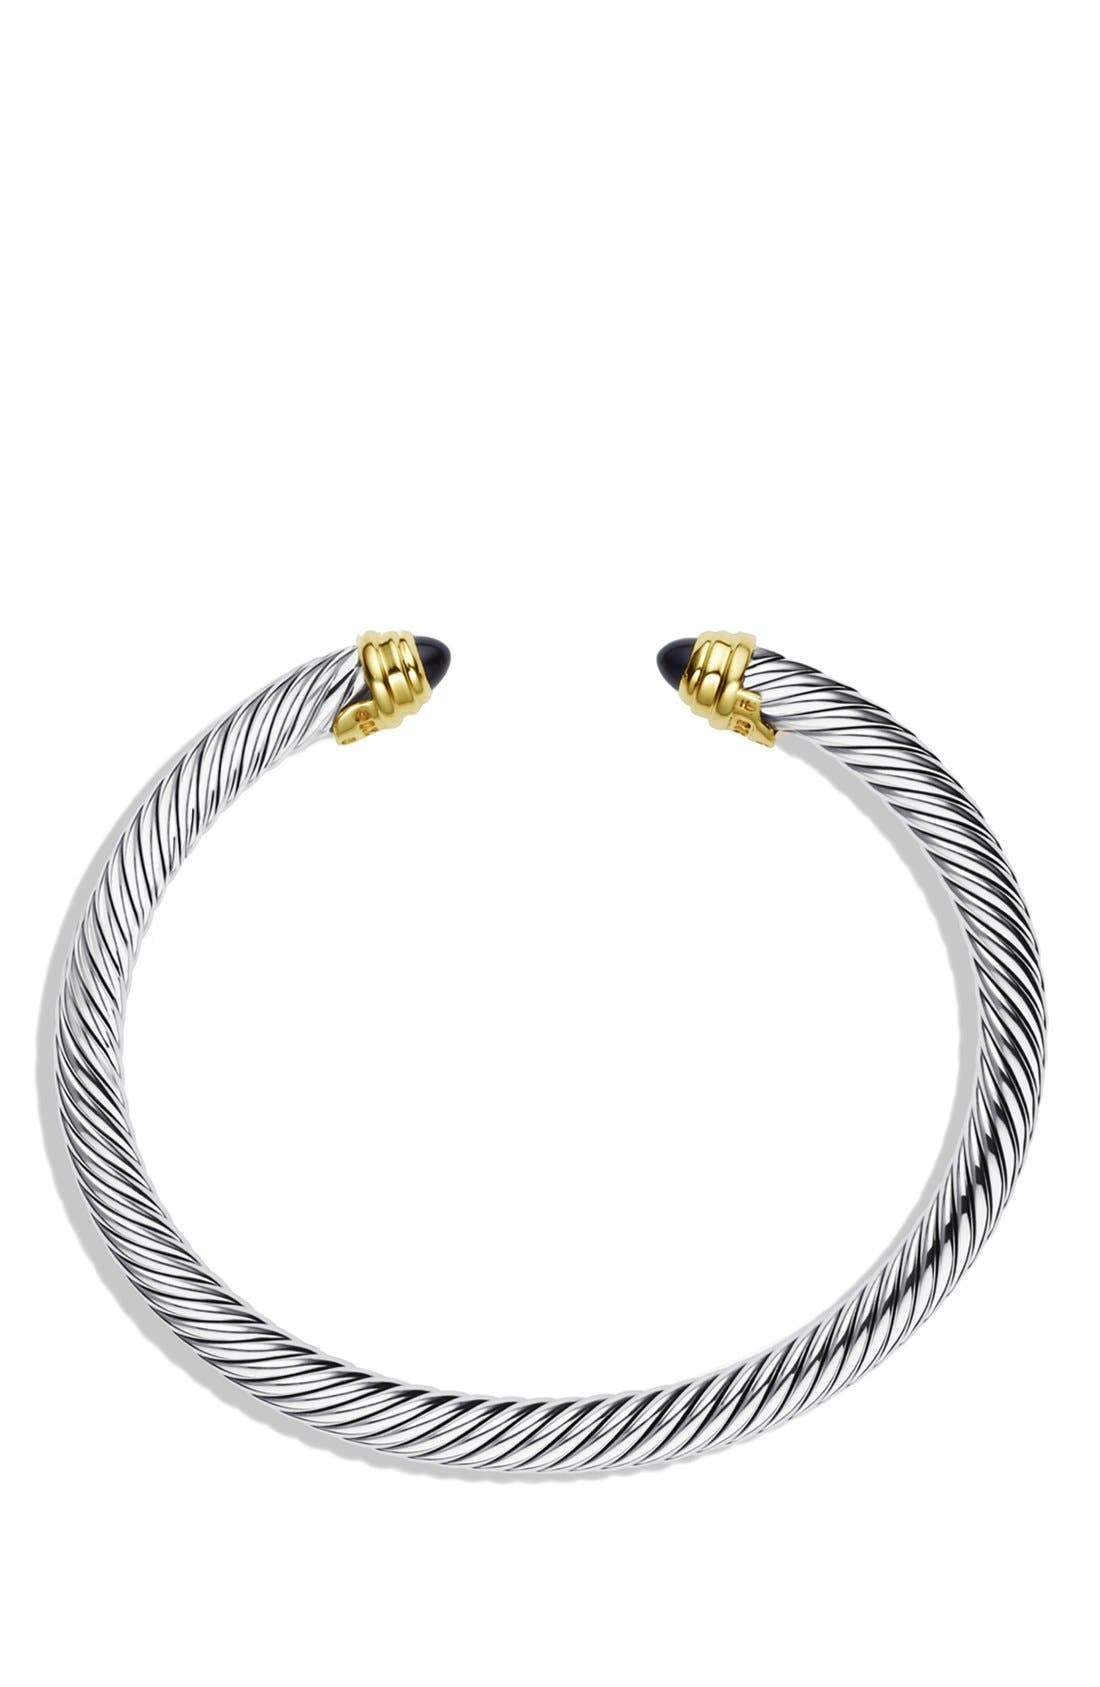 Alternate Image 2  - David Yurman 'Cable Classics' Bracelet with Semiprecious Stones & Gold